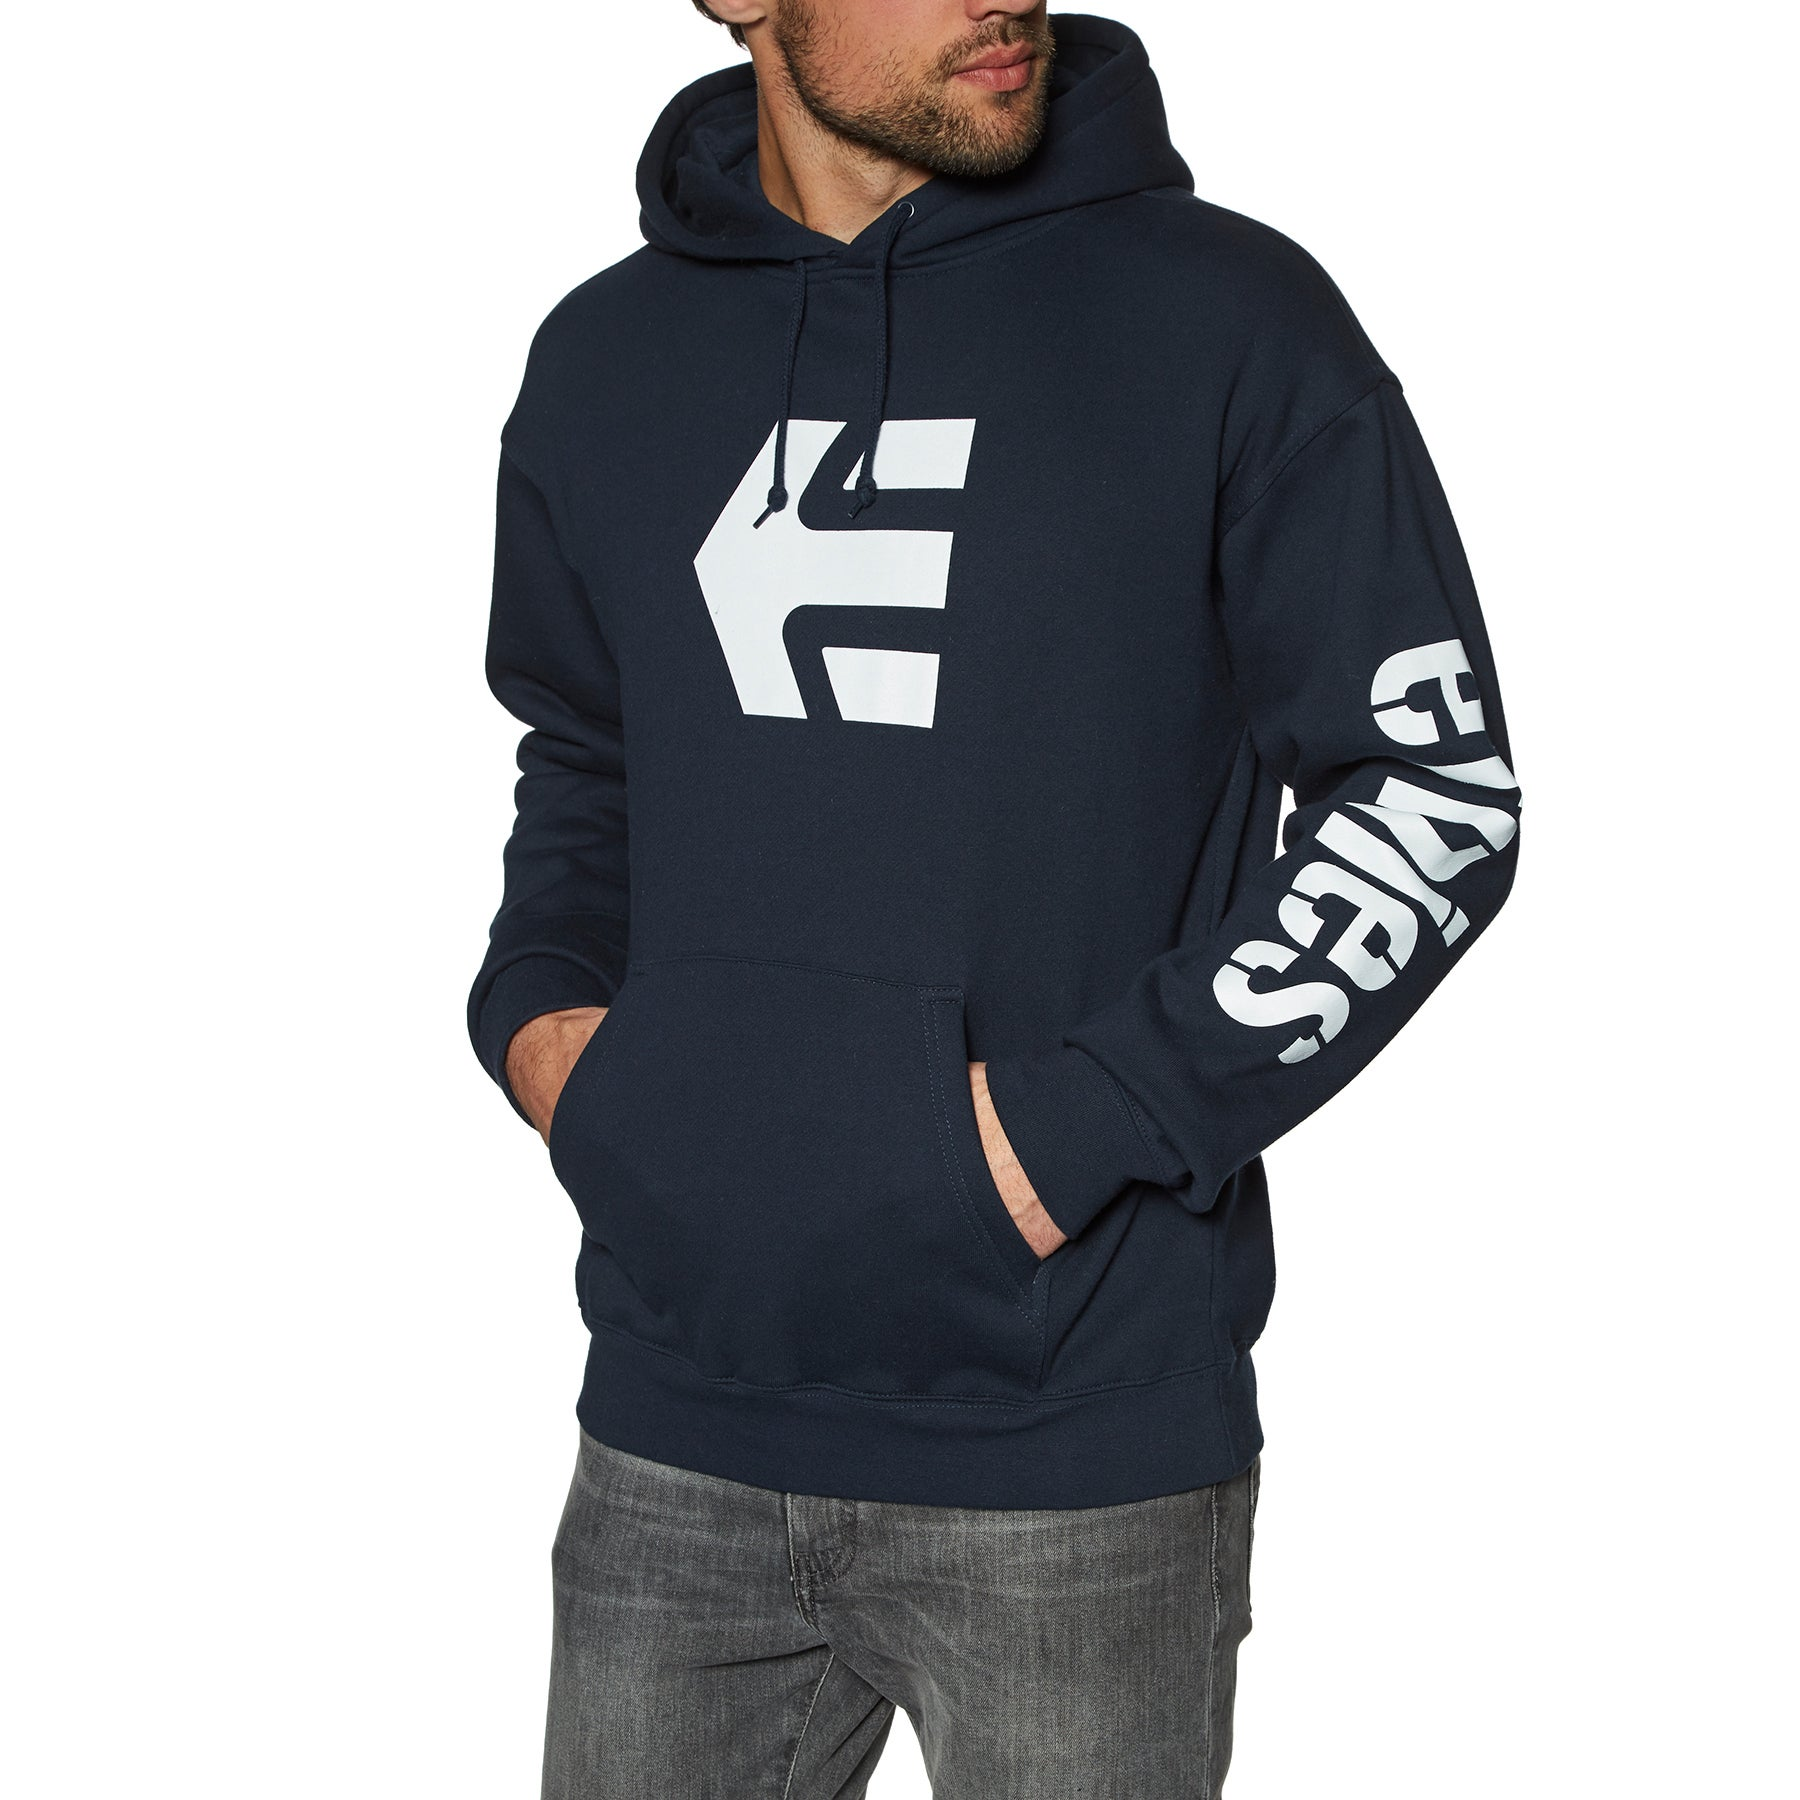 Details about Etnies Icon Hoody Pullover Navy All Sizes